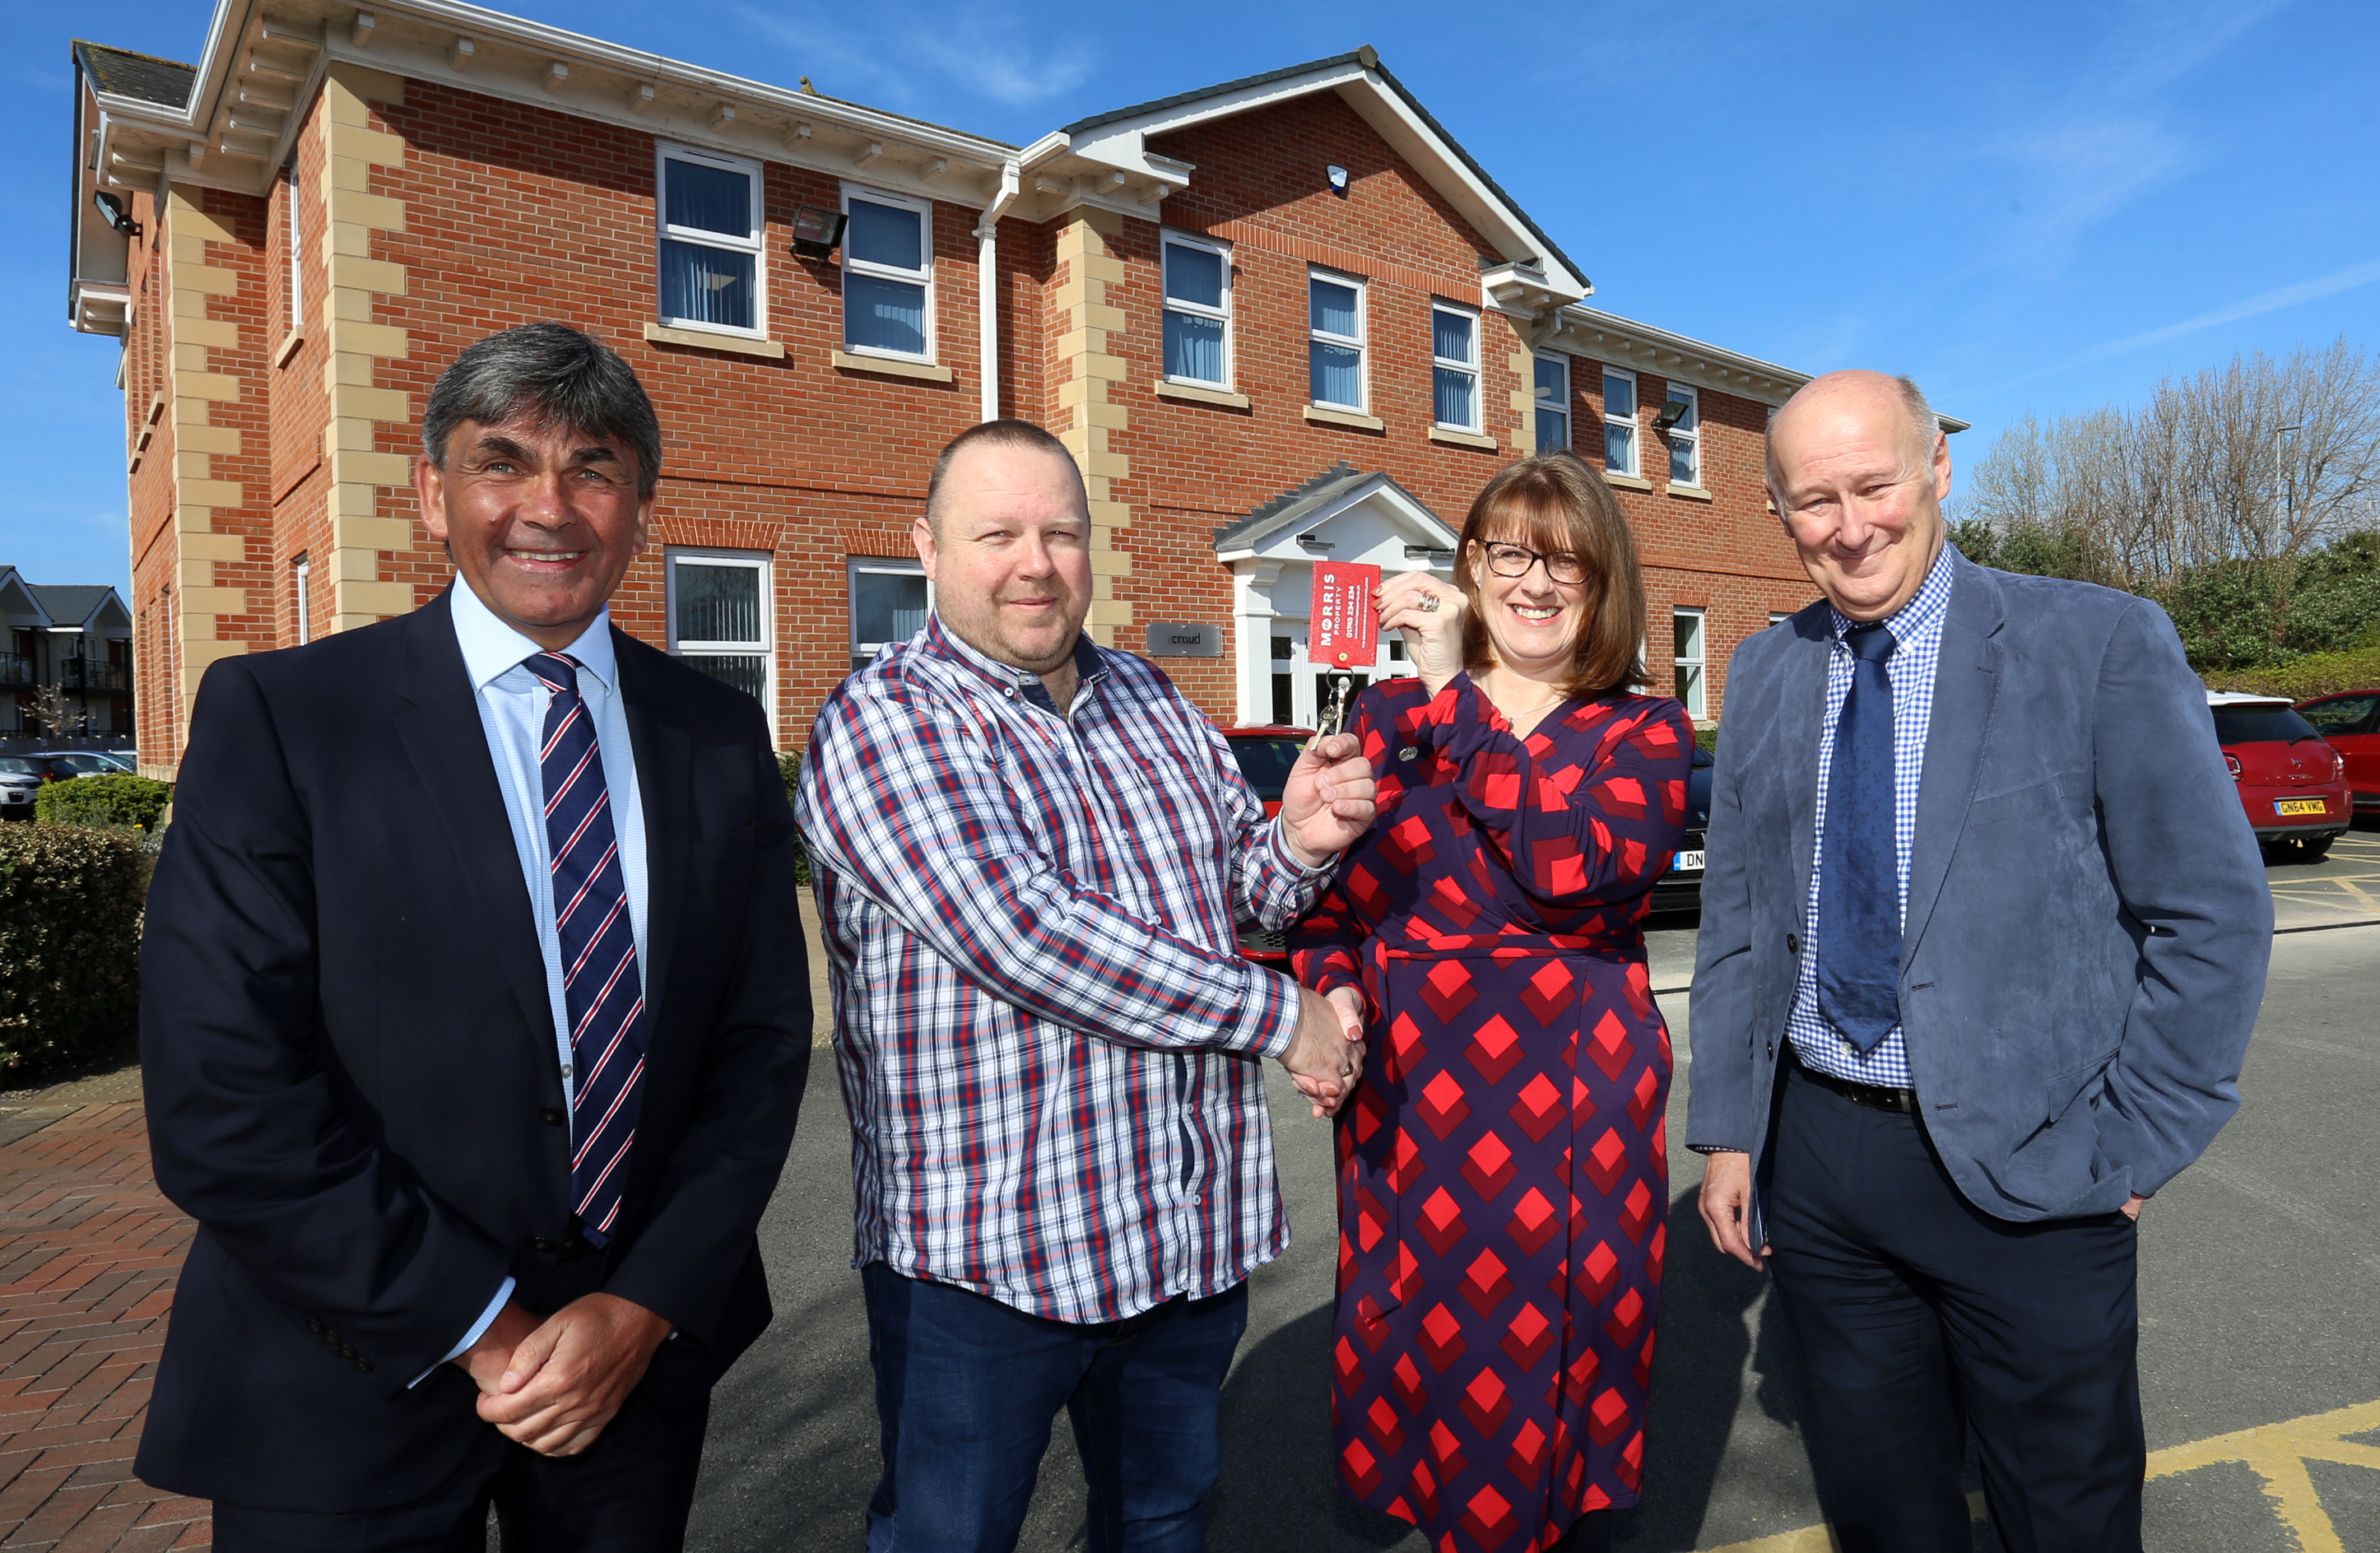 Shrewsbury Business Park supports growth and good neighbours